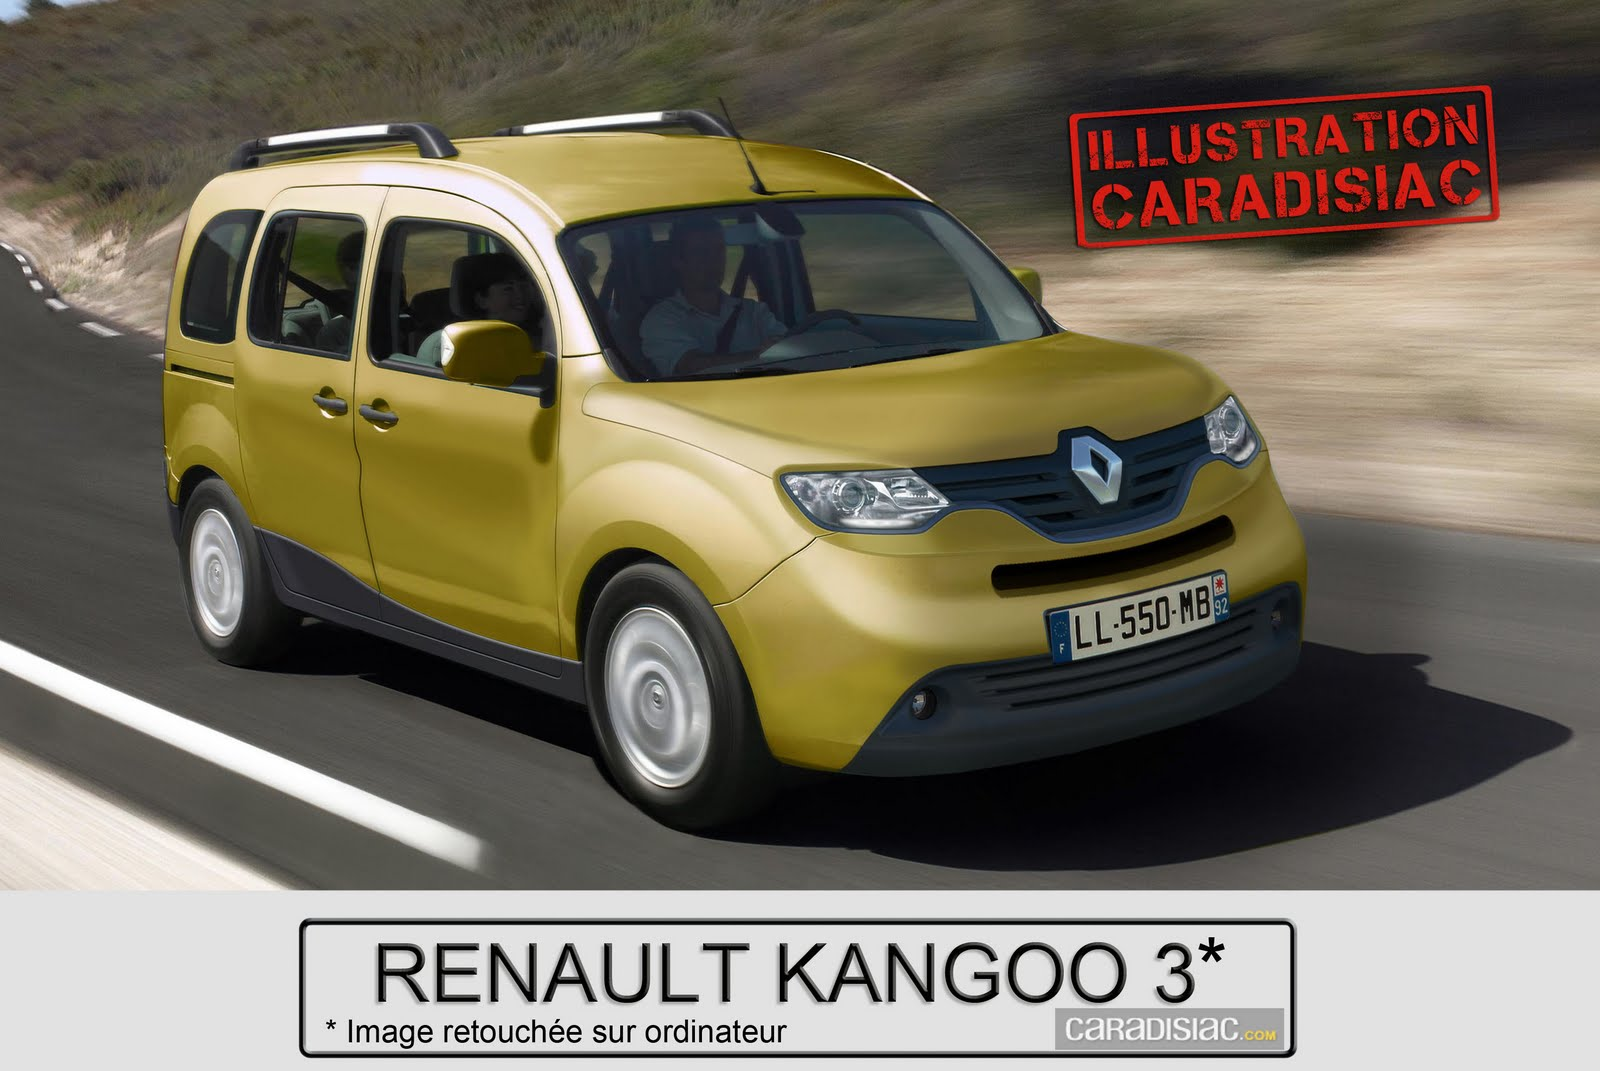 renault kangoo 2015 greek renault news. Black Bedroom Furniture Sets. Home Design Ideas